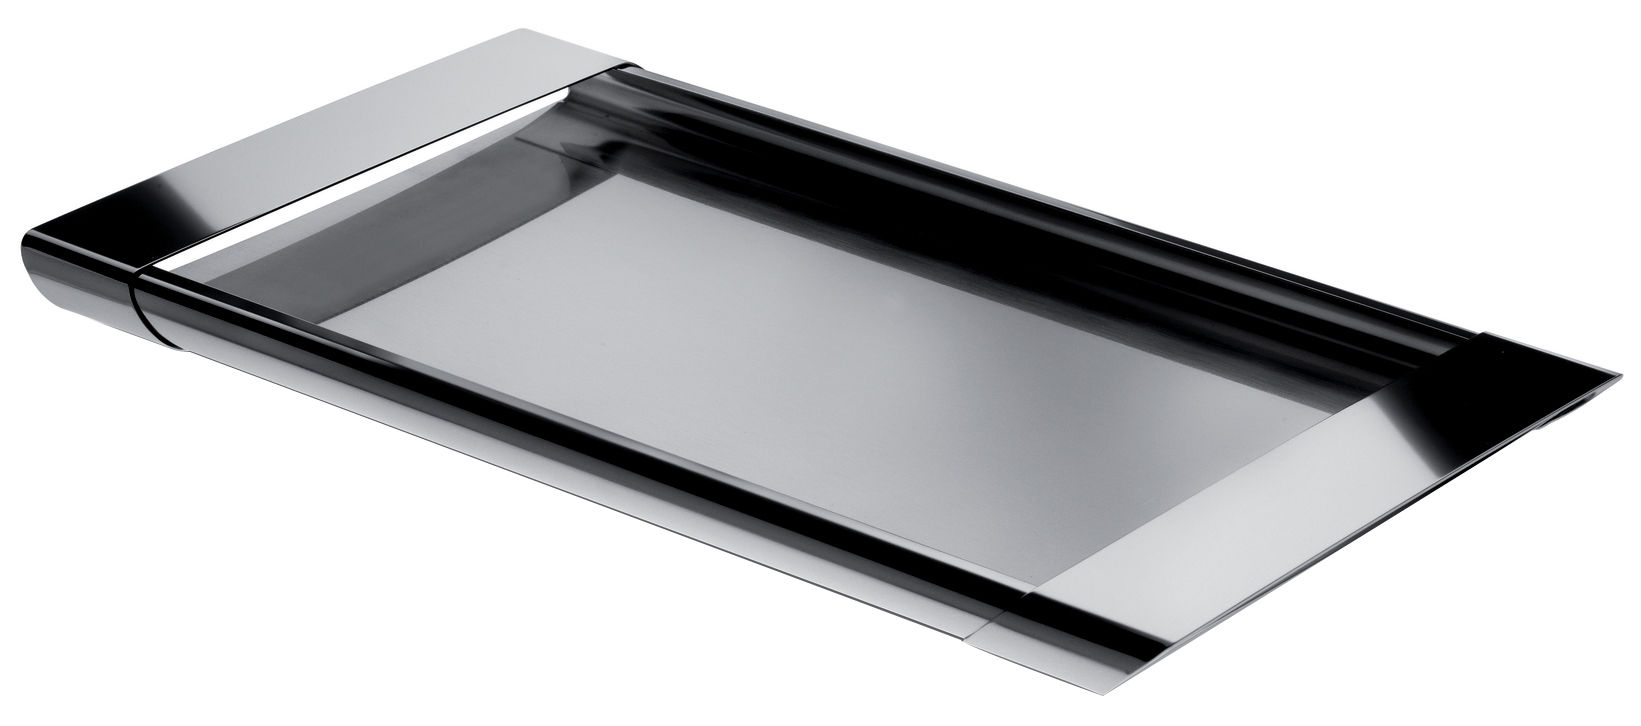 Tableware - Trays - Tiffany Tray by Alessi - Steel - Stainless steel